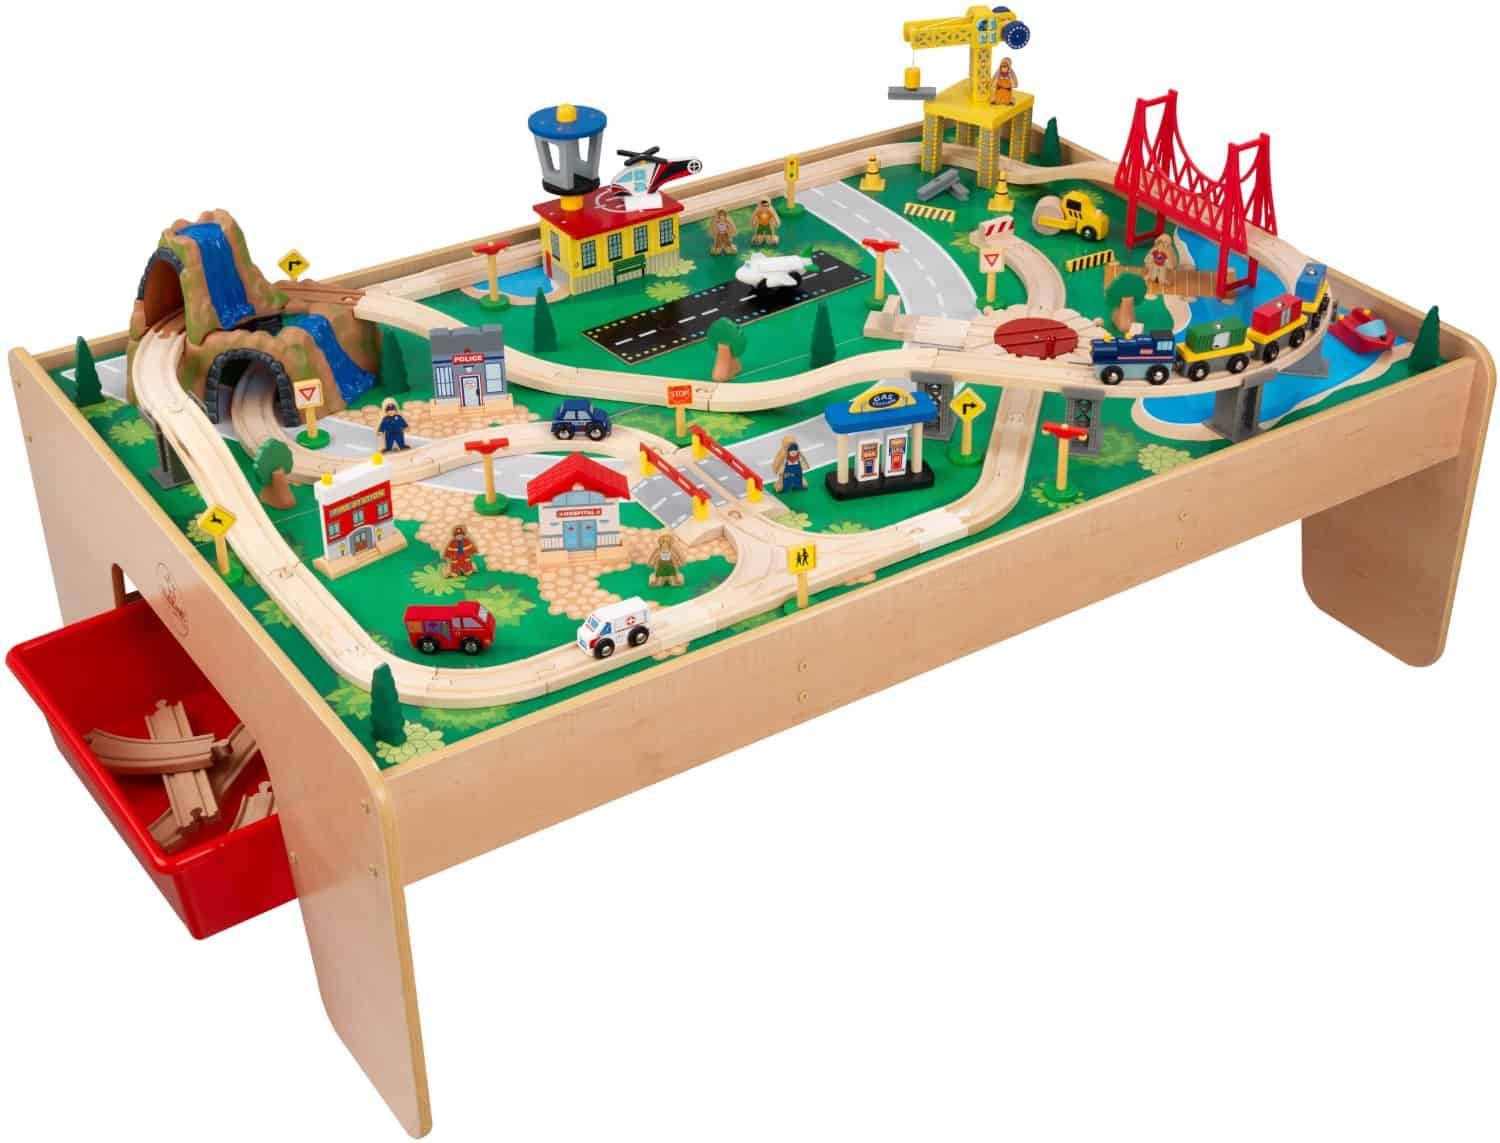 sc 1 st  Toy Train Center & Train Table Buying Guide and Tips | Toy Train Center